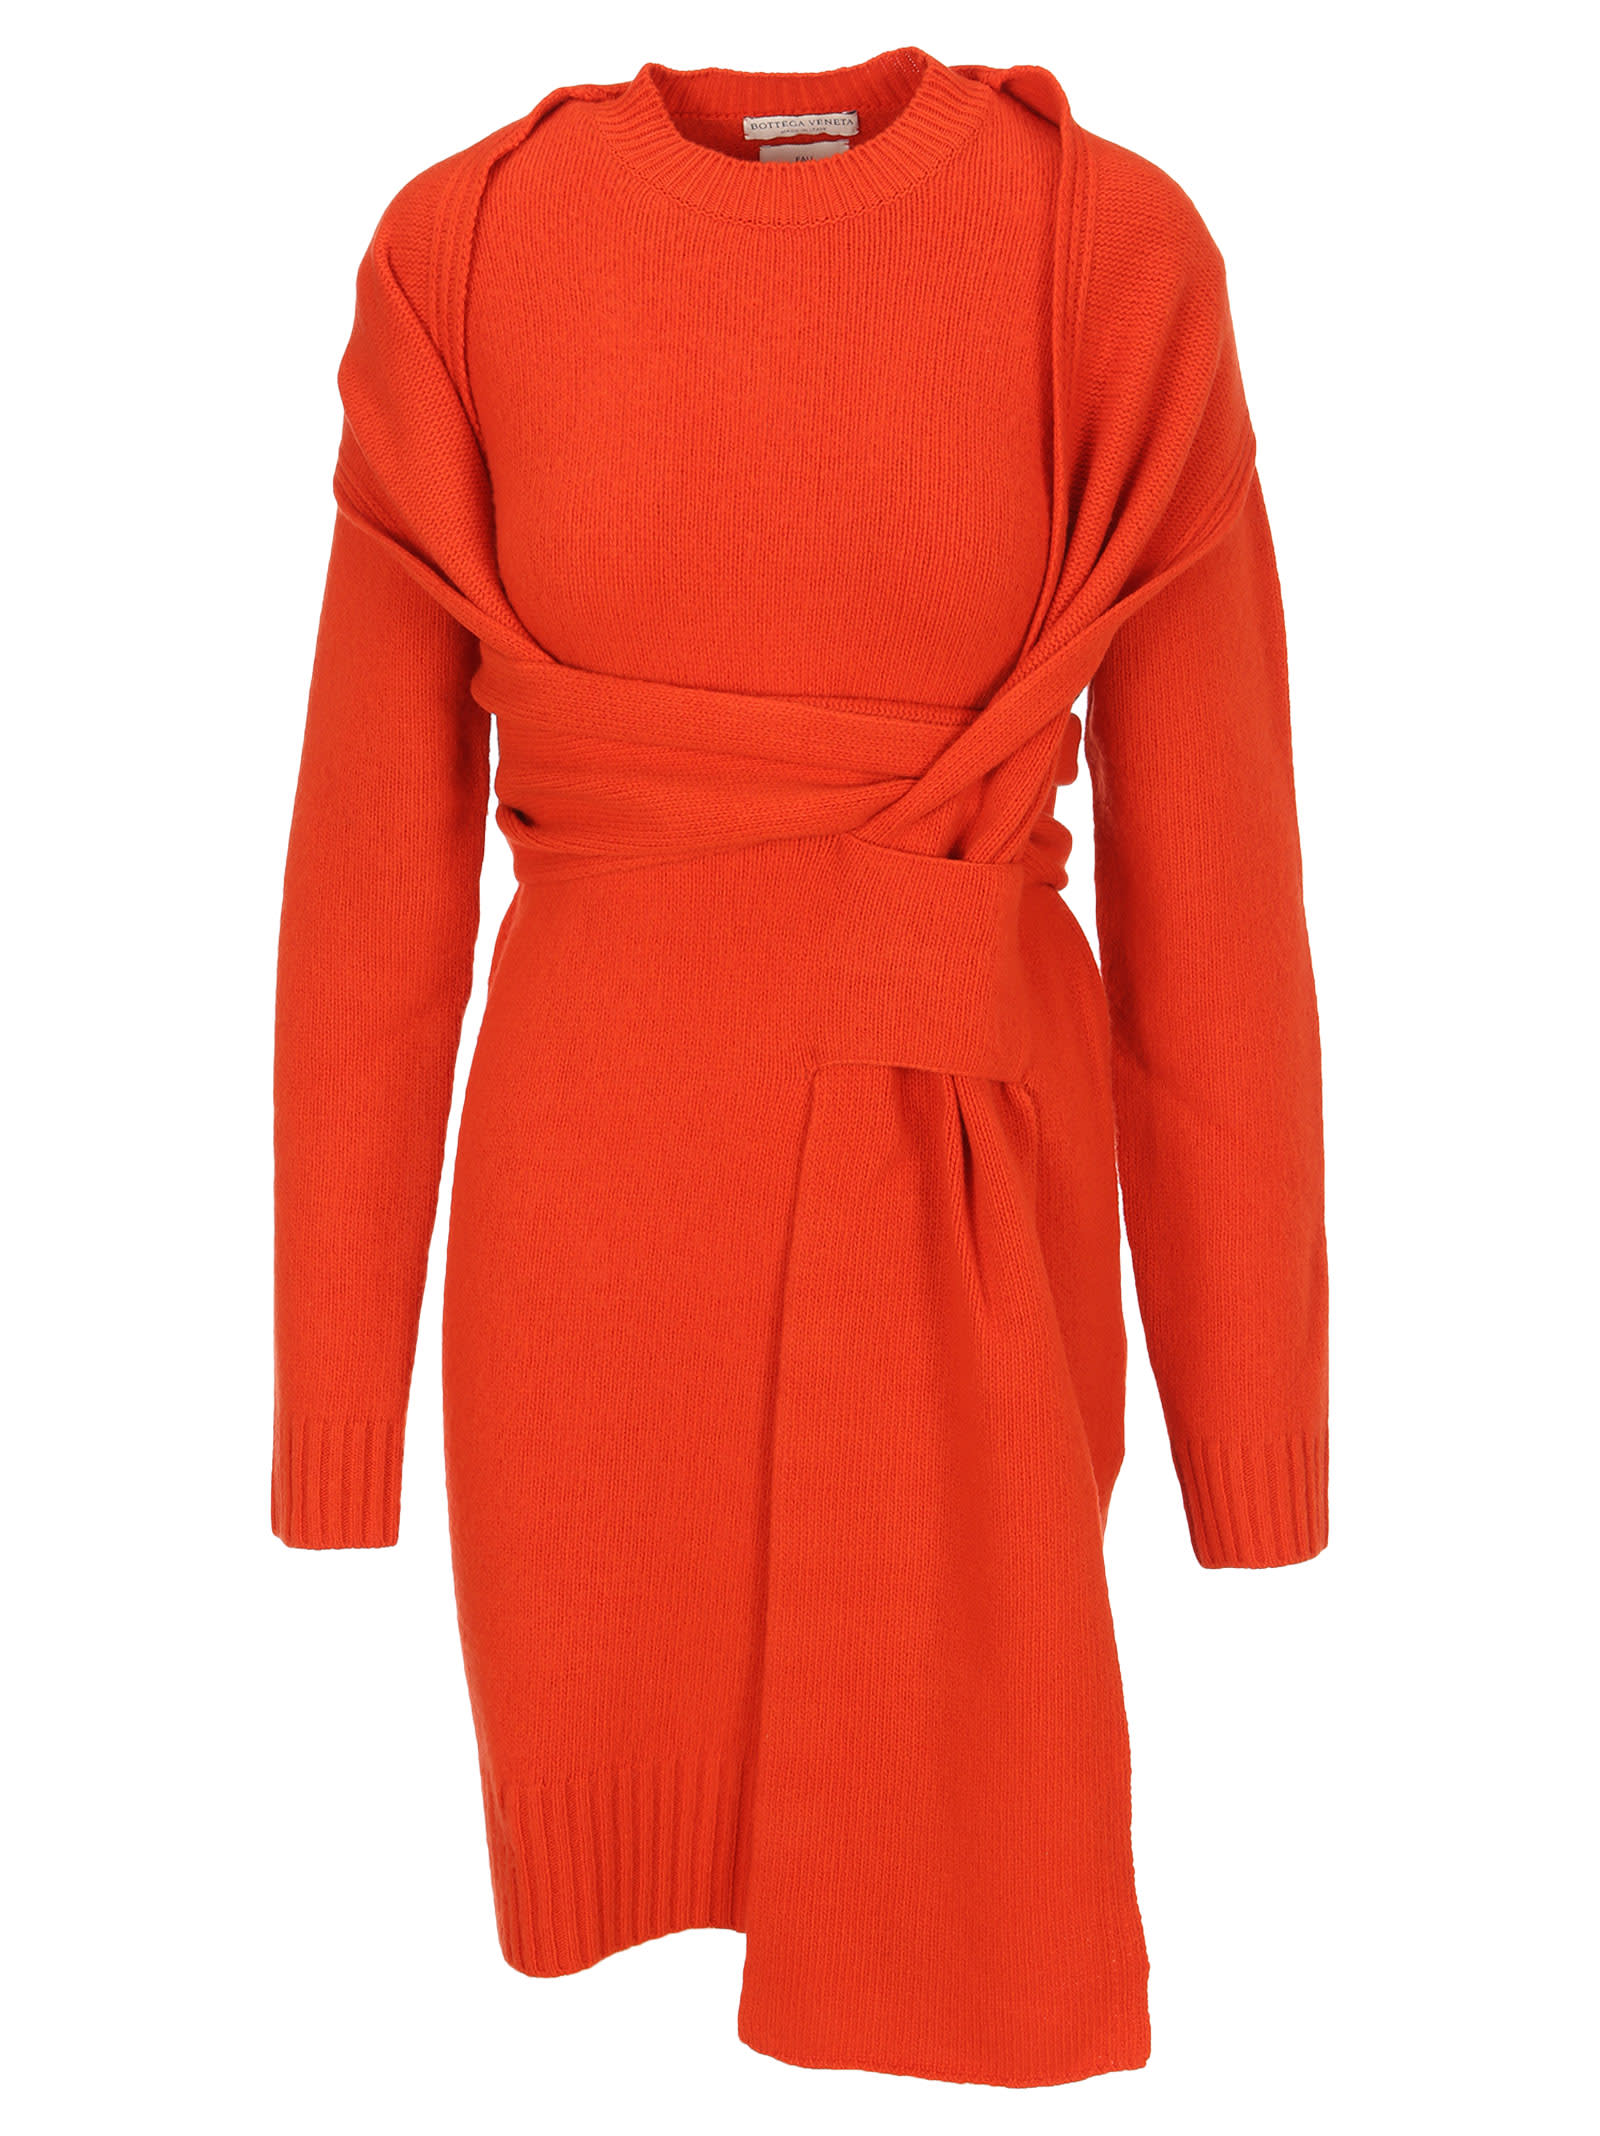 Bottega Veneta Intrecciato Knitted Dress